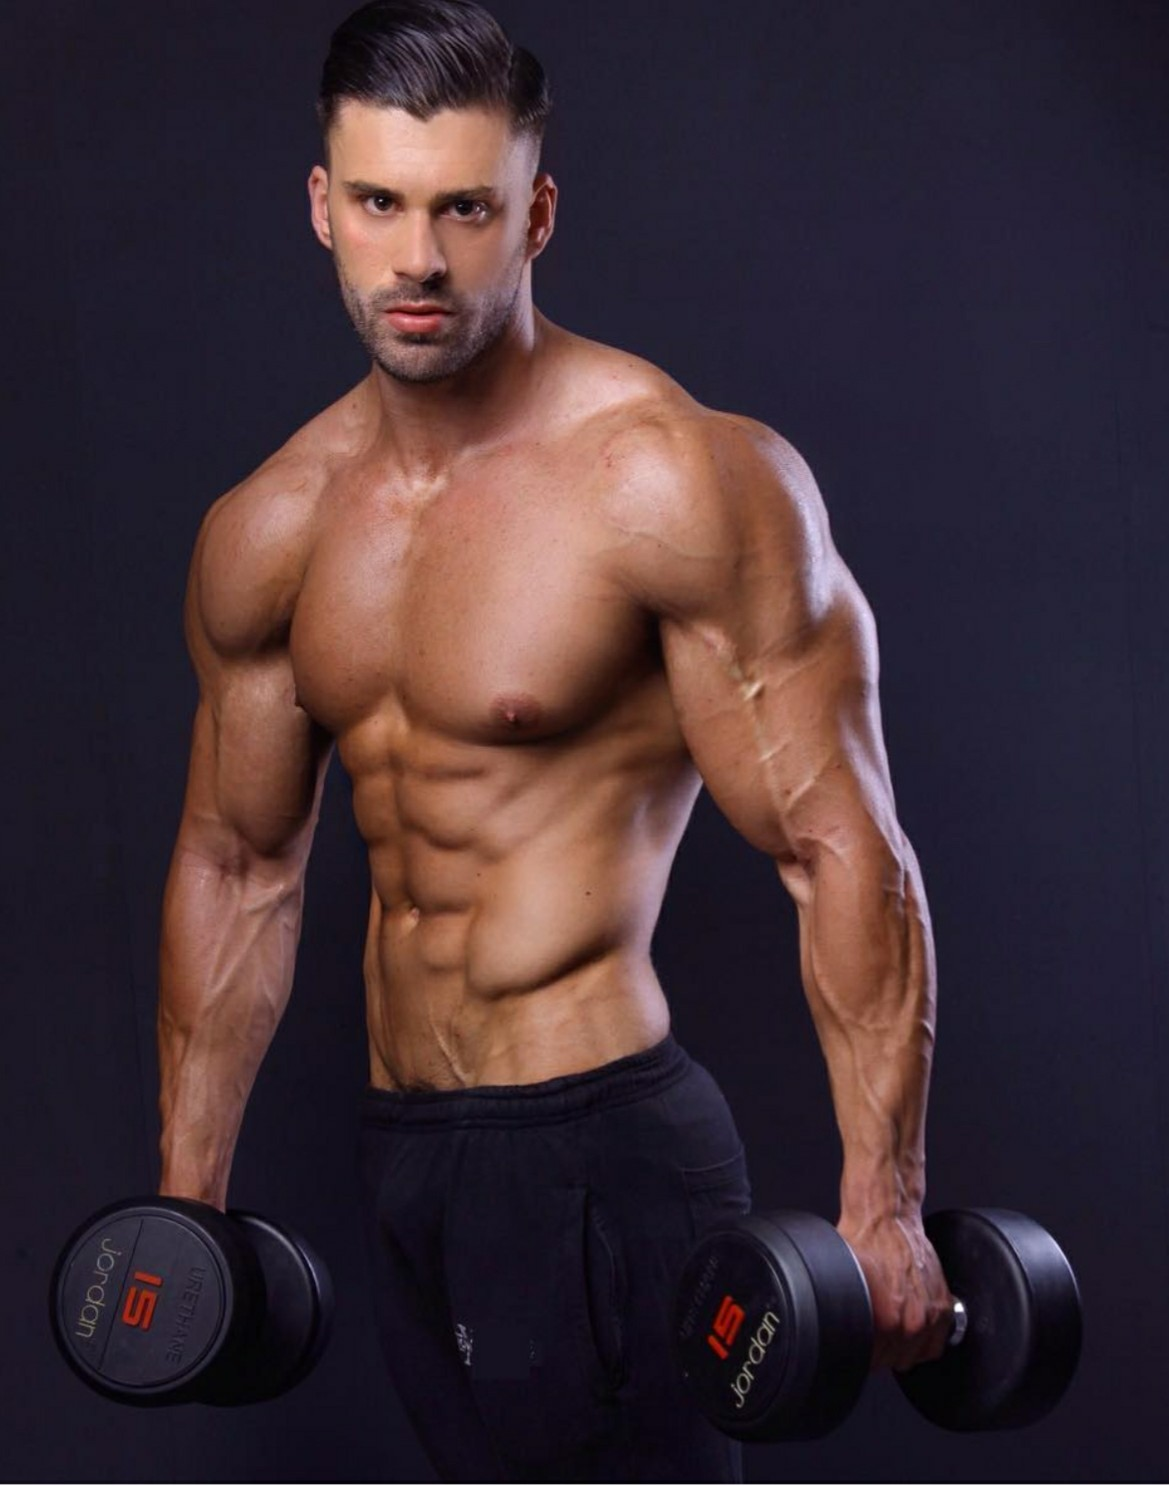 Fitness Models On Instagram Overtaking Celebrities As Role: BUILD BODY WORKS: Fitness Model Liam Jolley